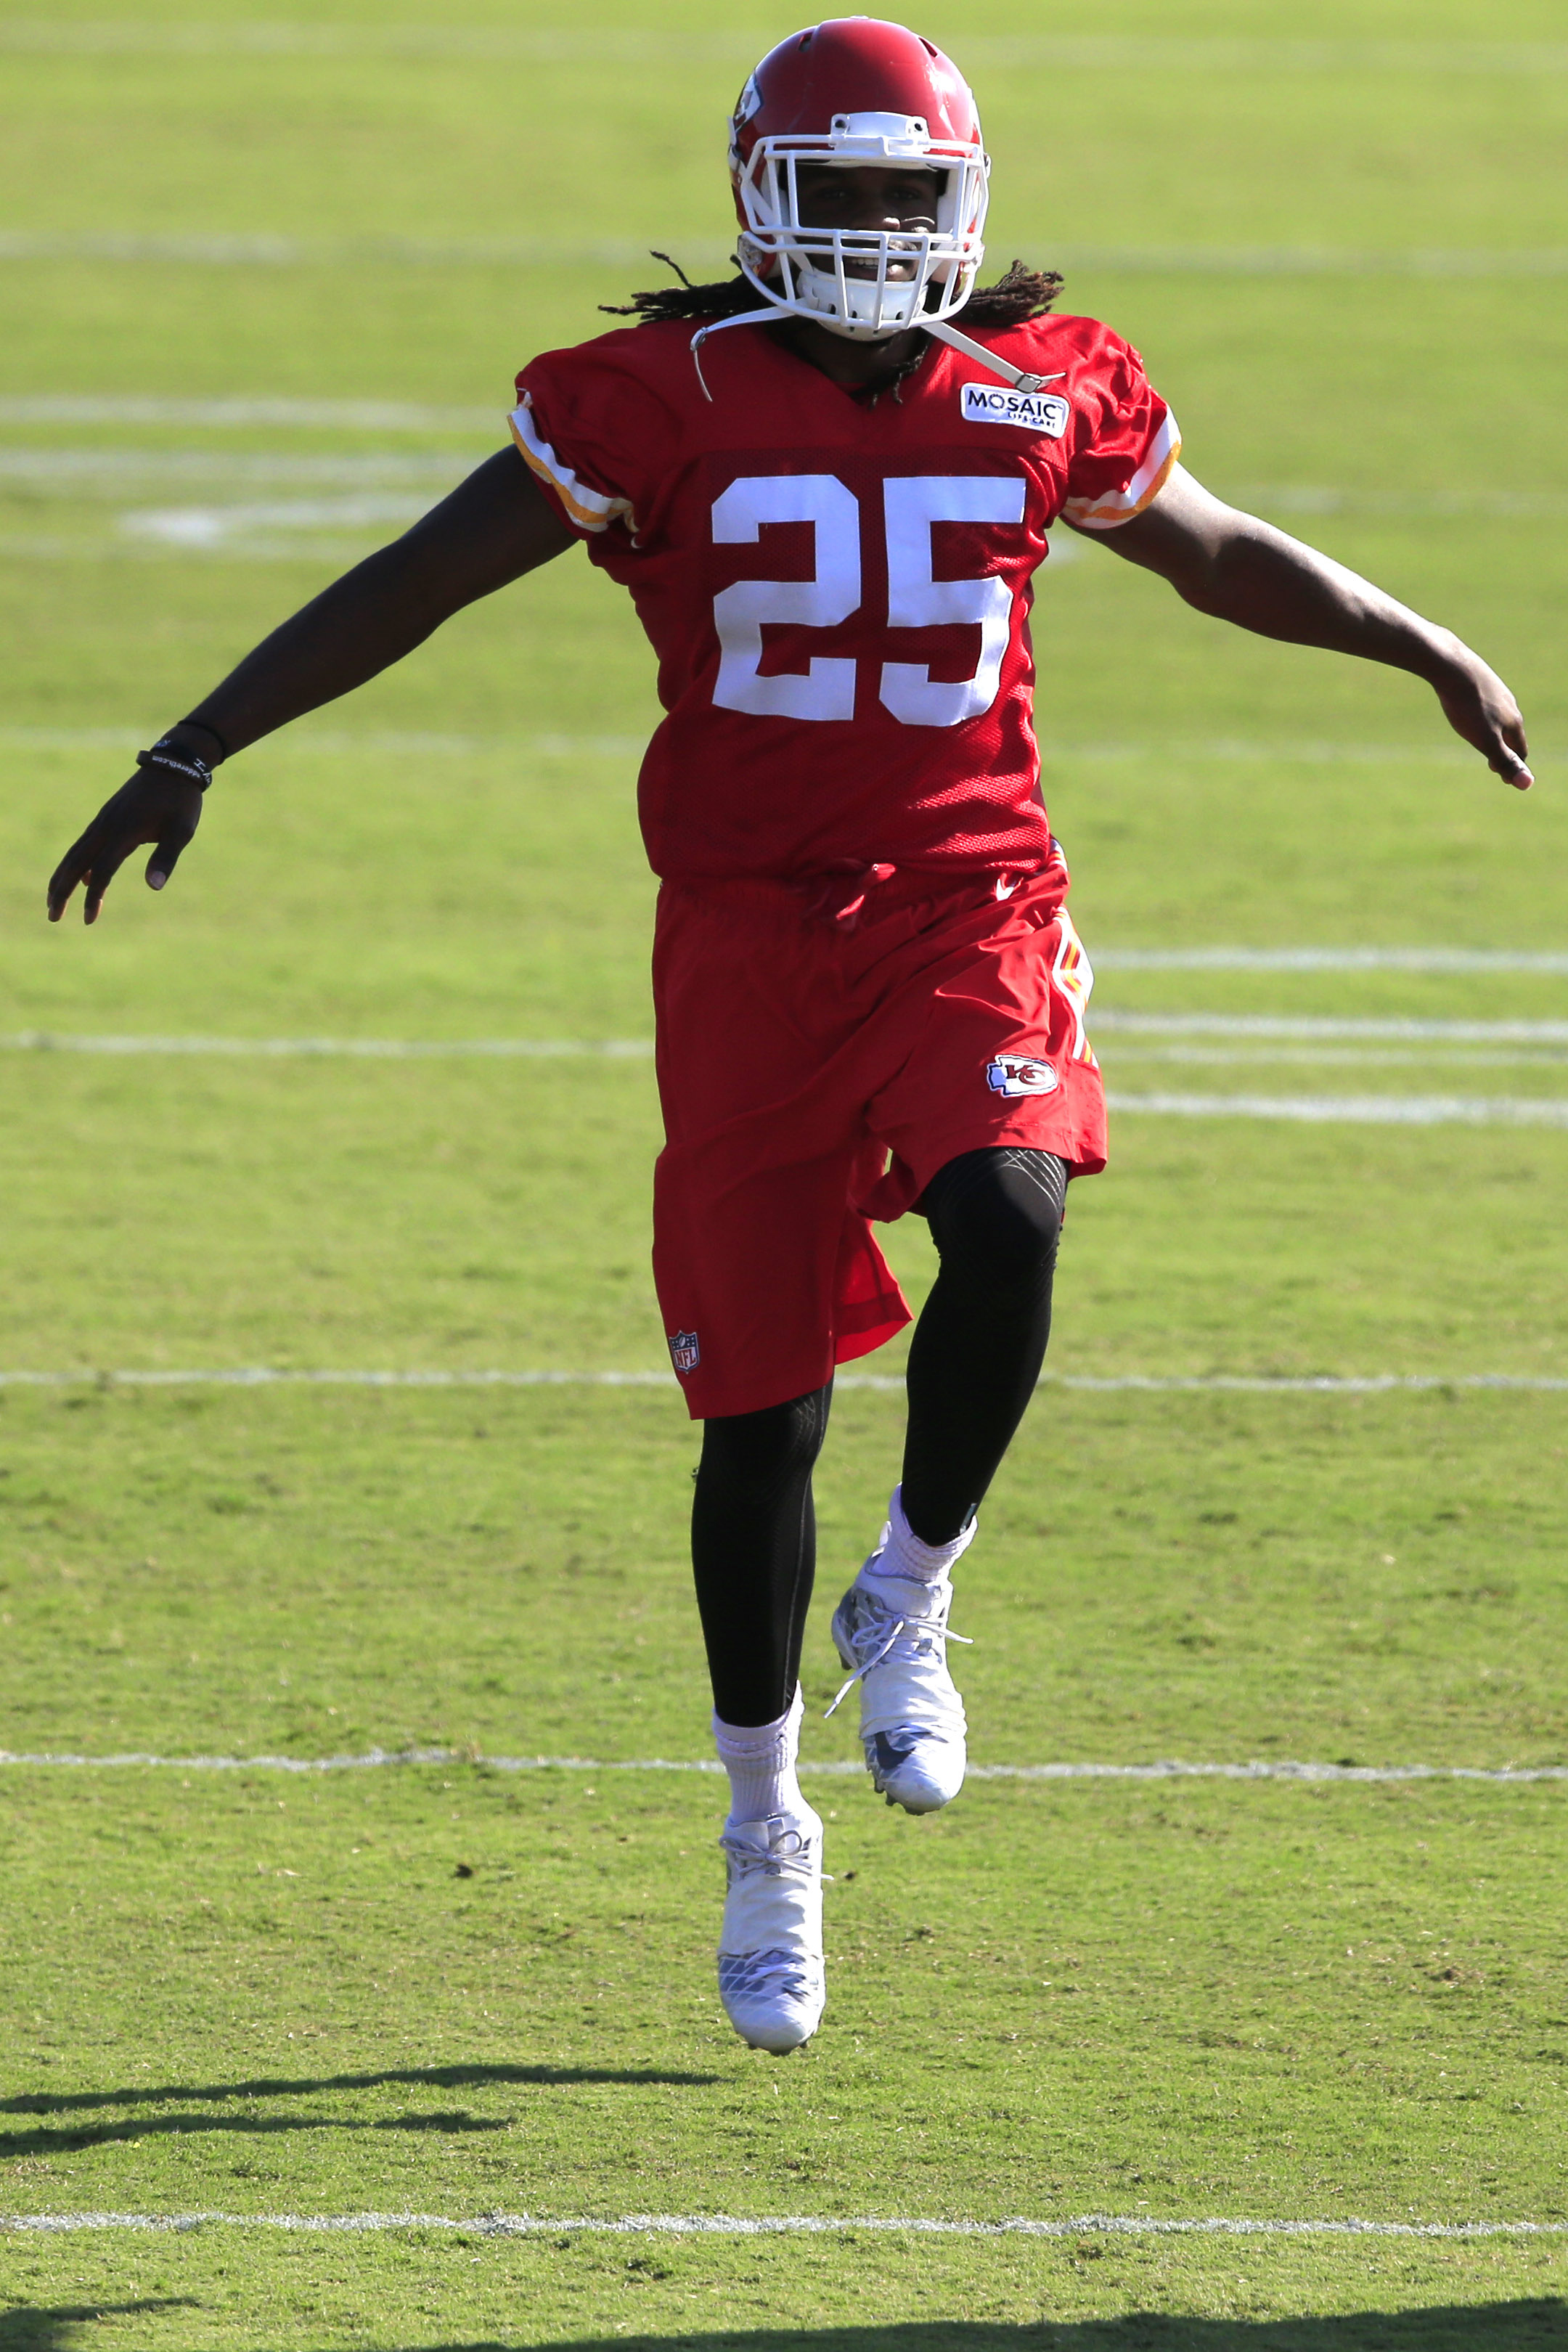 FILE - In this Aug. 17, 2016, file photo, Kansas City Chiefs running back Jamaal Charles warms up during NFL football training camp,  in St. Joseph, Mo. The Chiefs feel like they have more talent across the board than at any point under general manager Jo